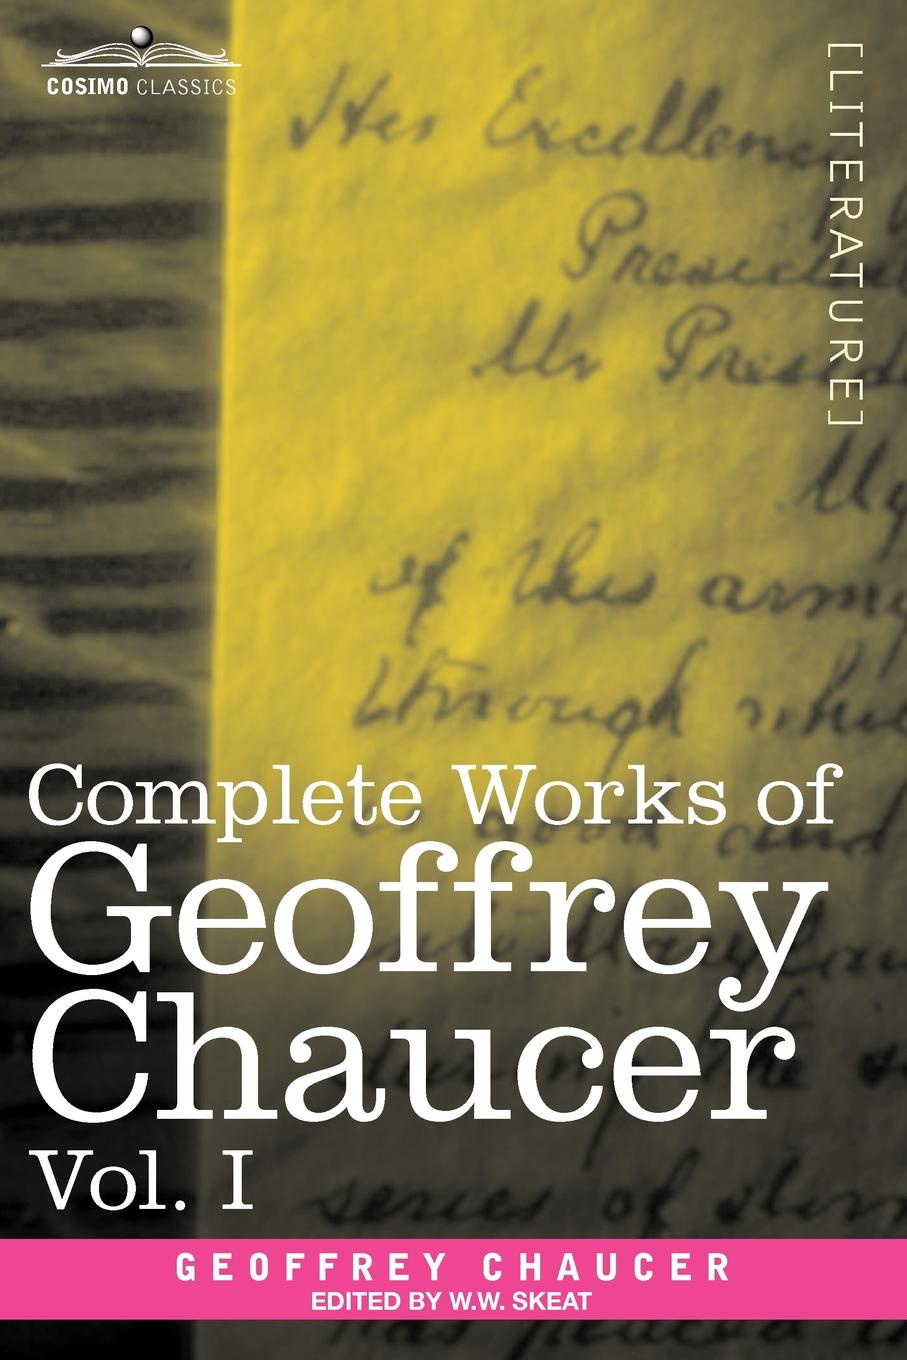 лучшая цена Geoffrey Chaucer Complete Works of Geoffrey Chaucer, Vol. I. Romaunt of the Rose, Minor Poems (in Seven Volumes)